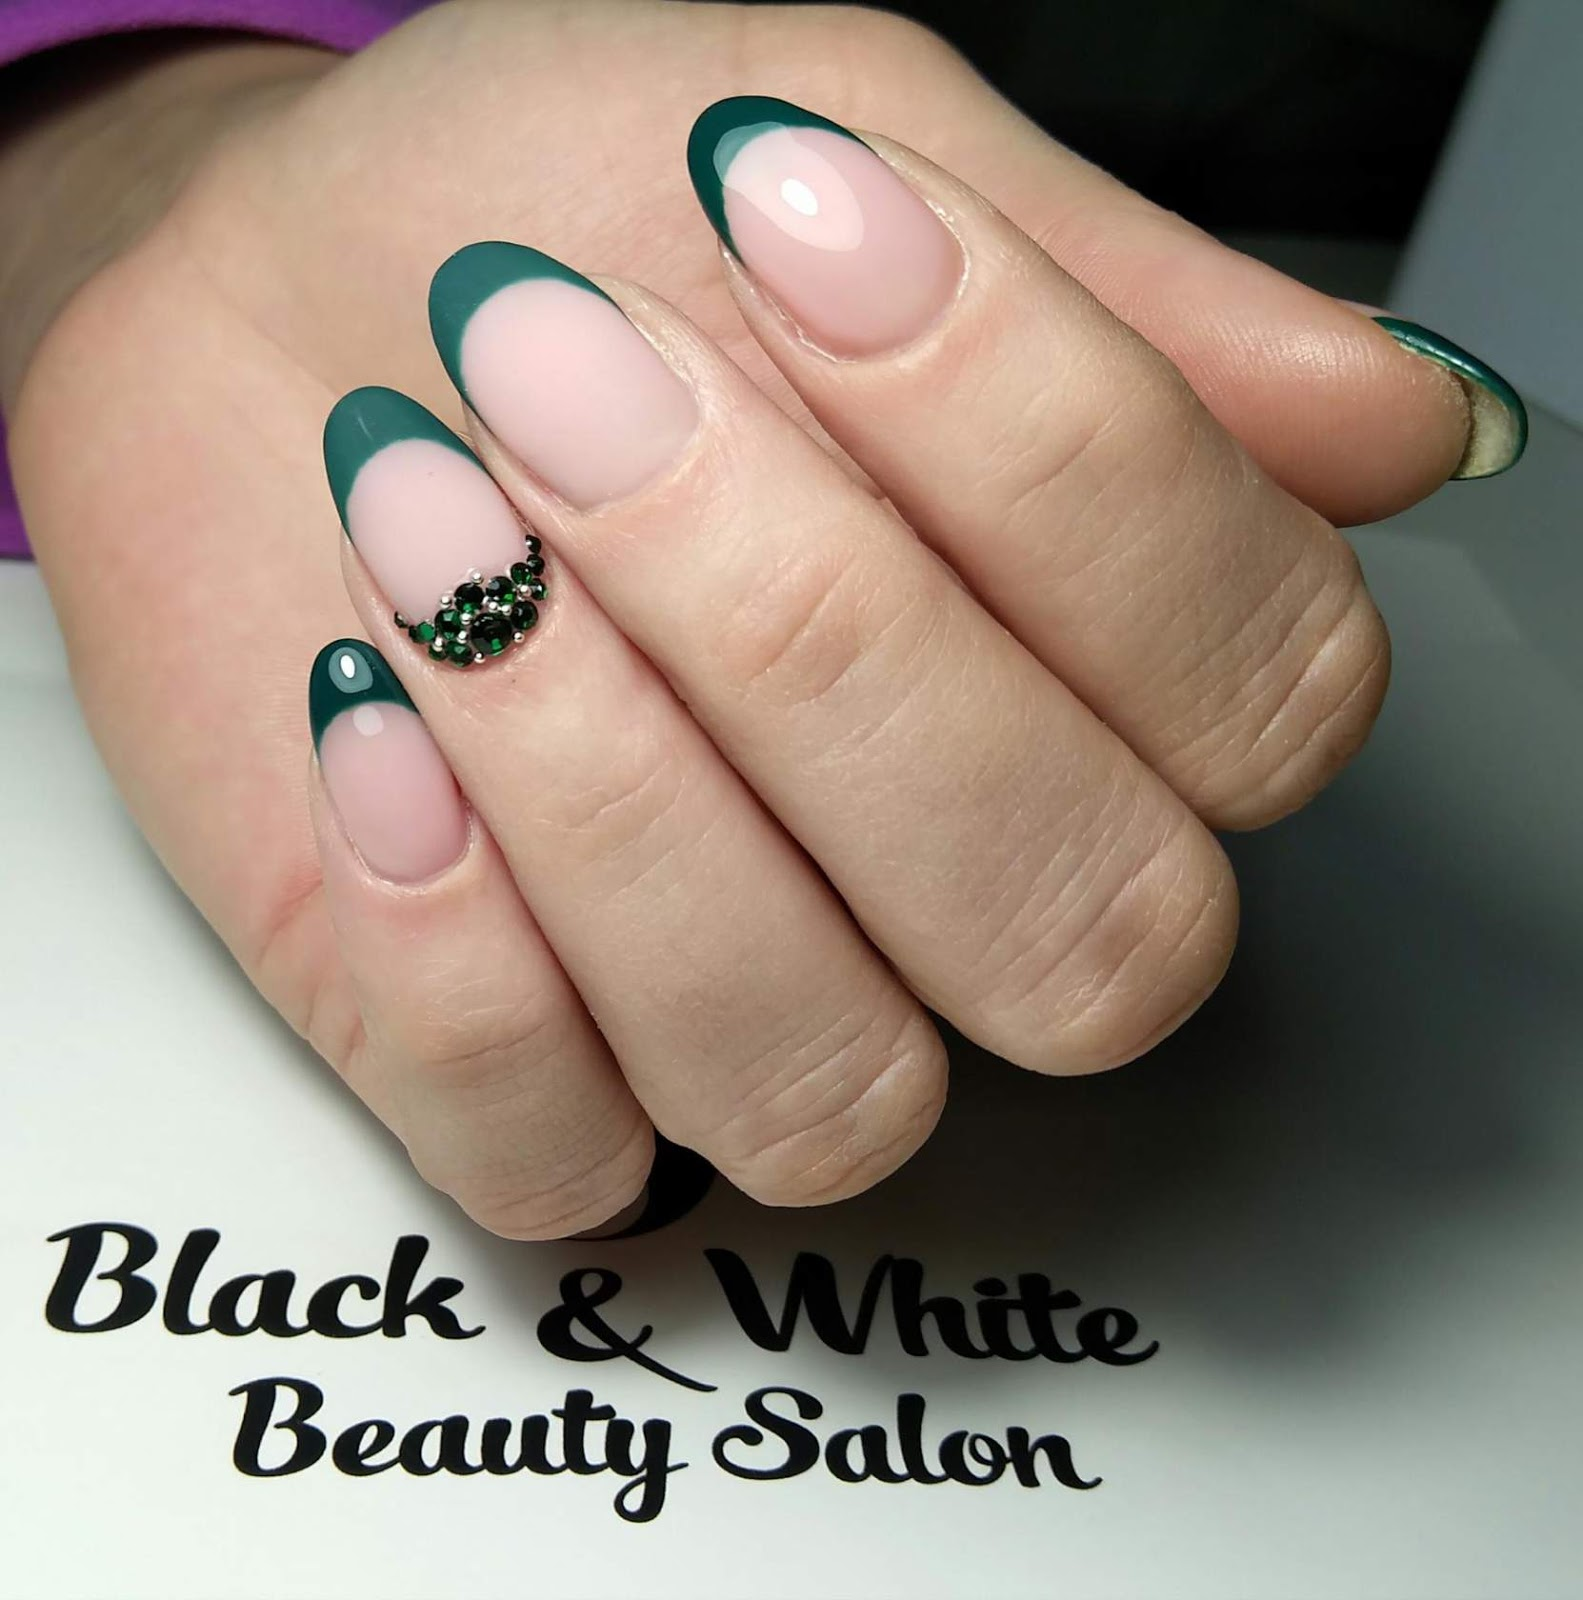 Black & White Nails Art Disign: Nail Patella Syndrome Facts